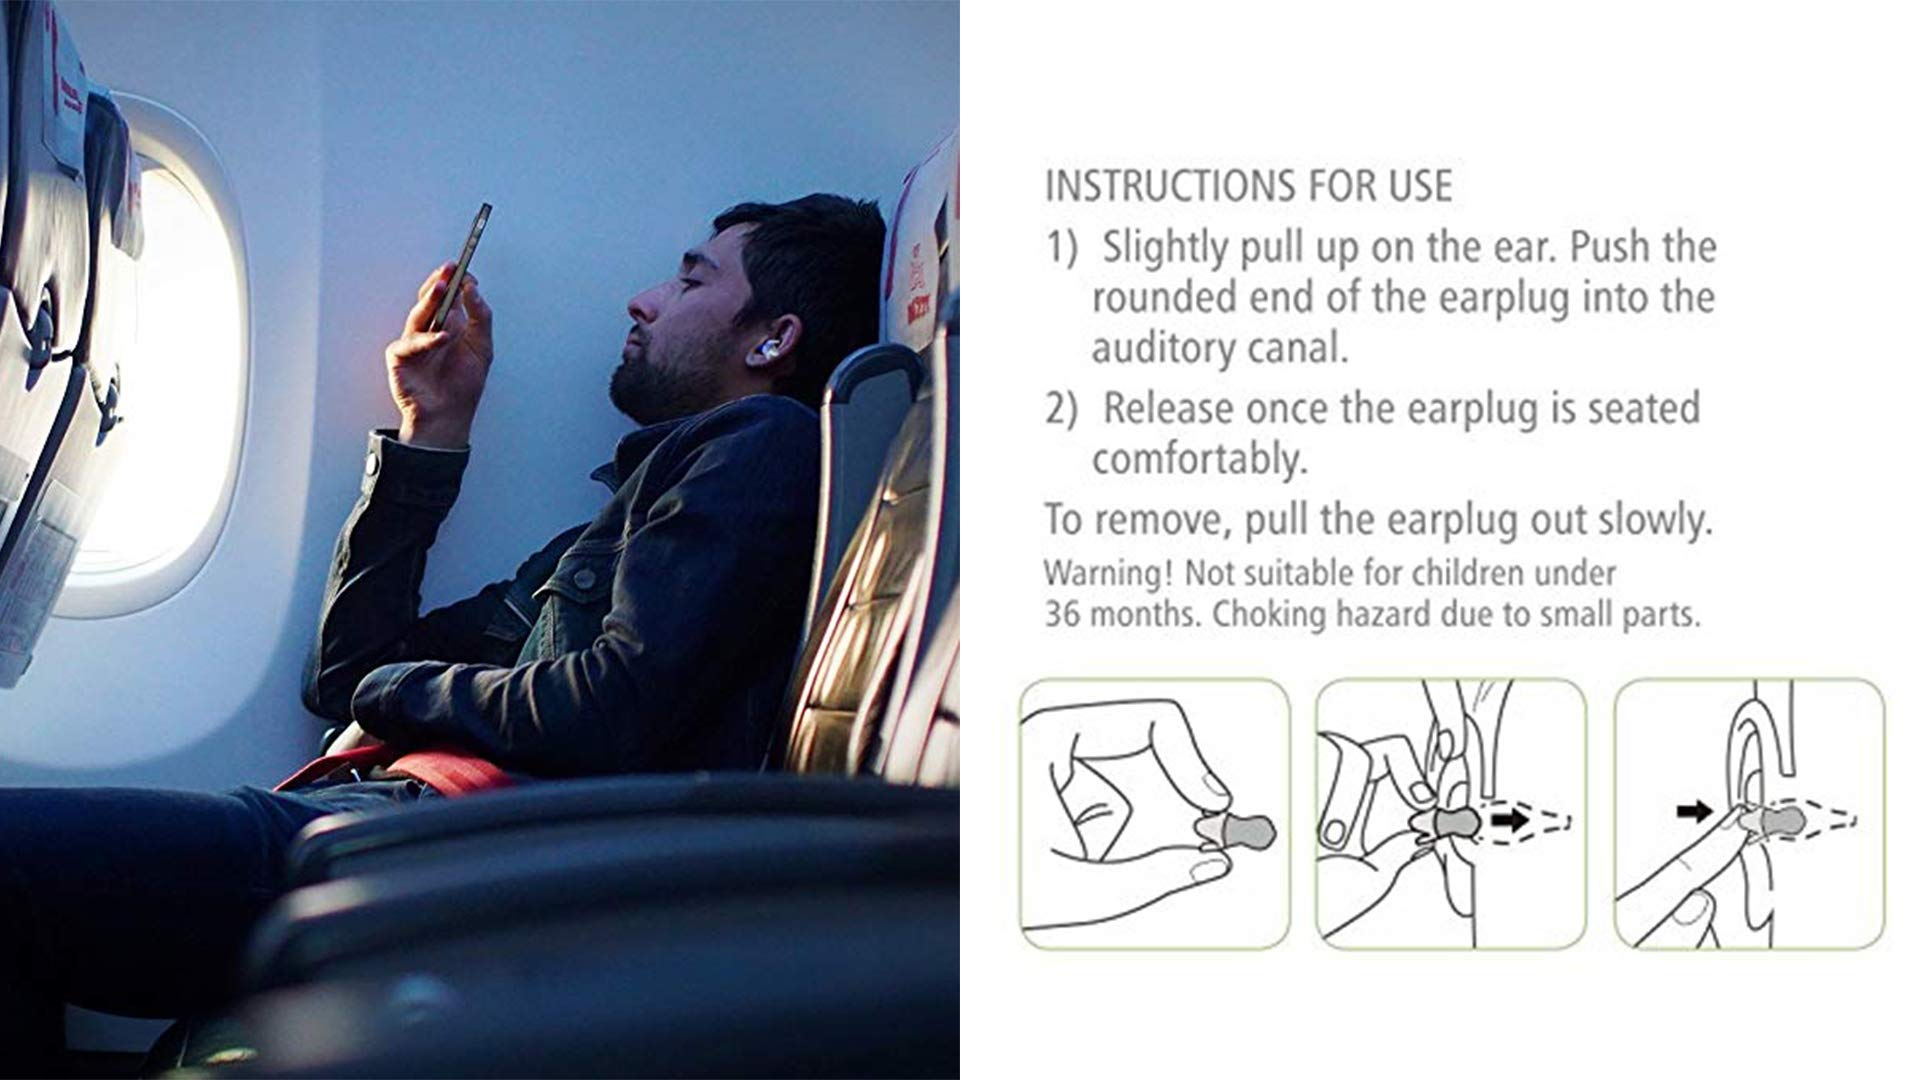 Ear Plugs Comfortable - Hearing Protection Sleeping Swimming Concert Shutting - Earplugs for Kids and Adults Noise Cancelling - Reusable Earplugs High Fidelity by Leggio (Image #6)